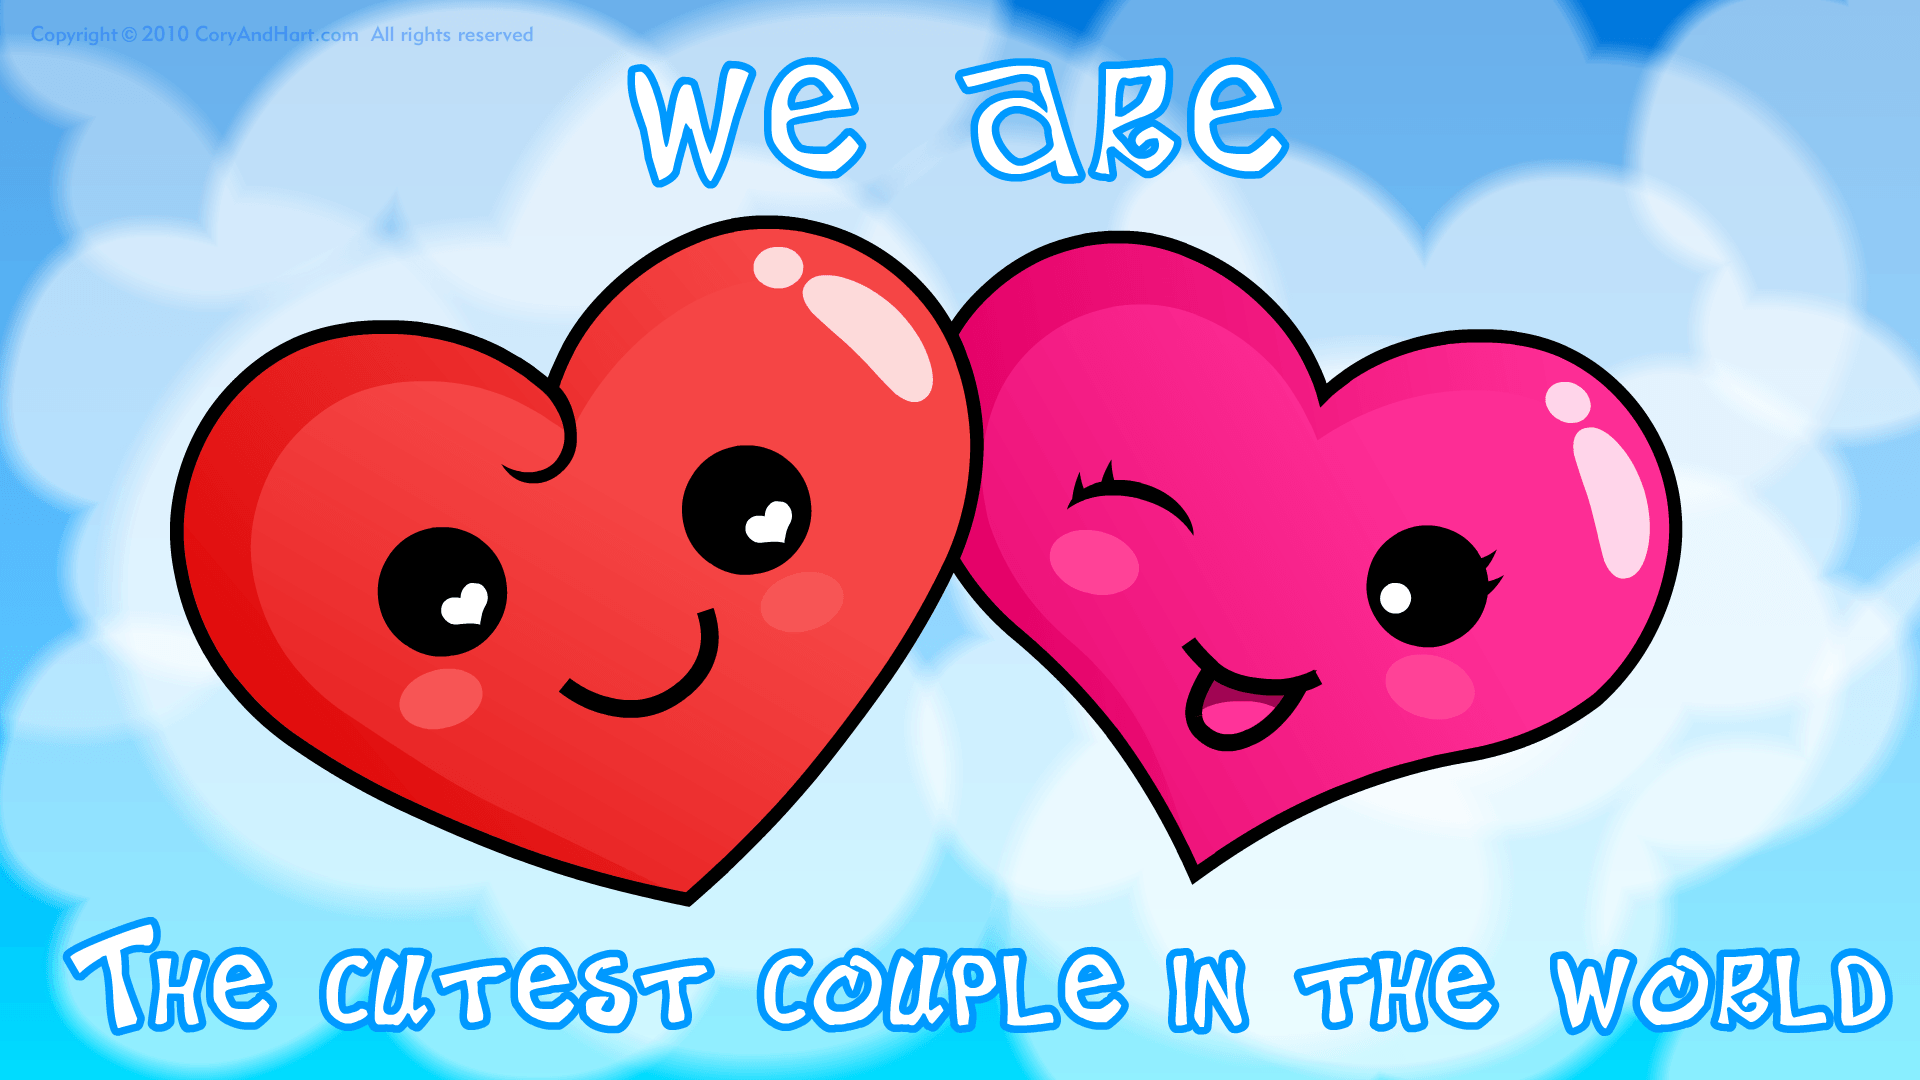 Sweet Love cartoon Wallpaper : Free Love Wallpapers Gallery - Wallpaper cave